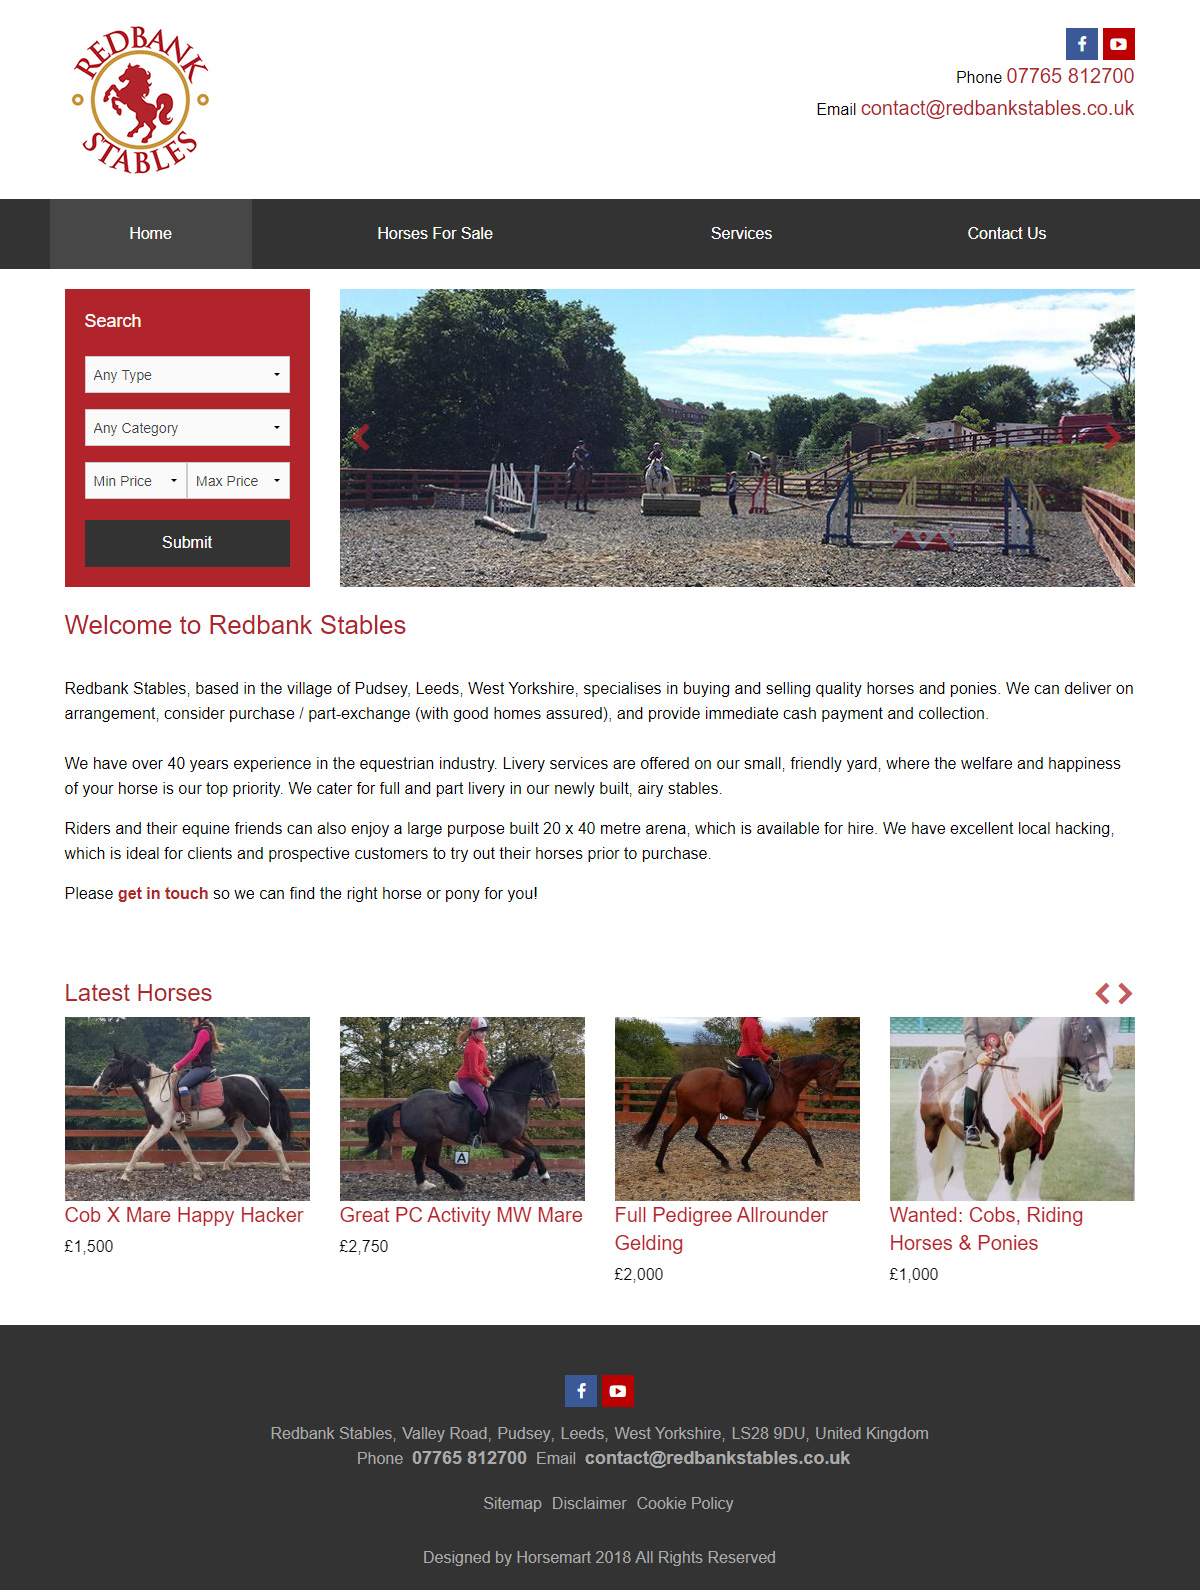 Redbank Stables Website